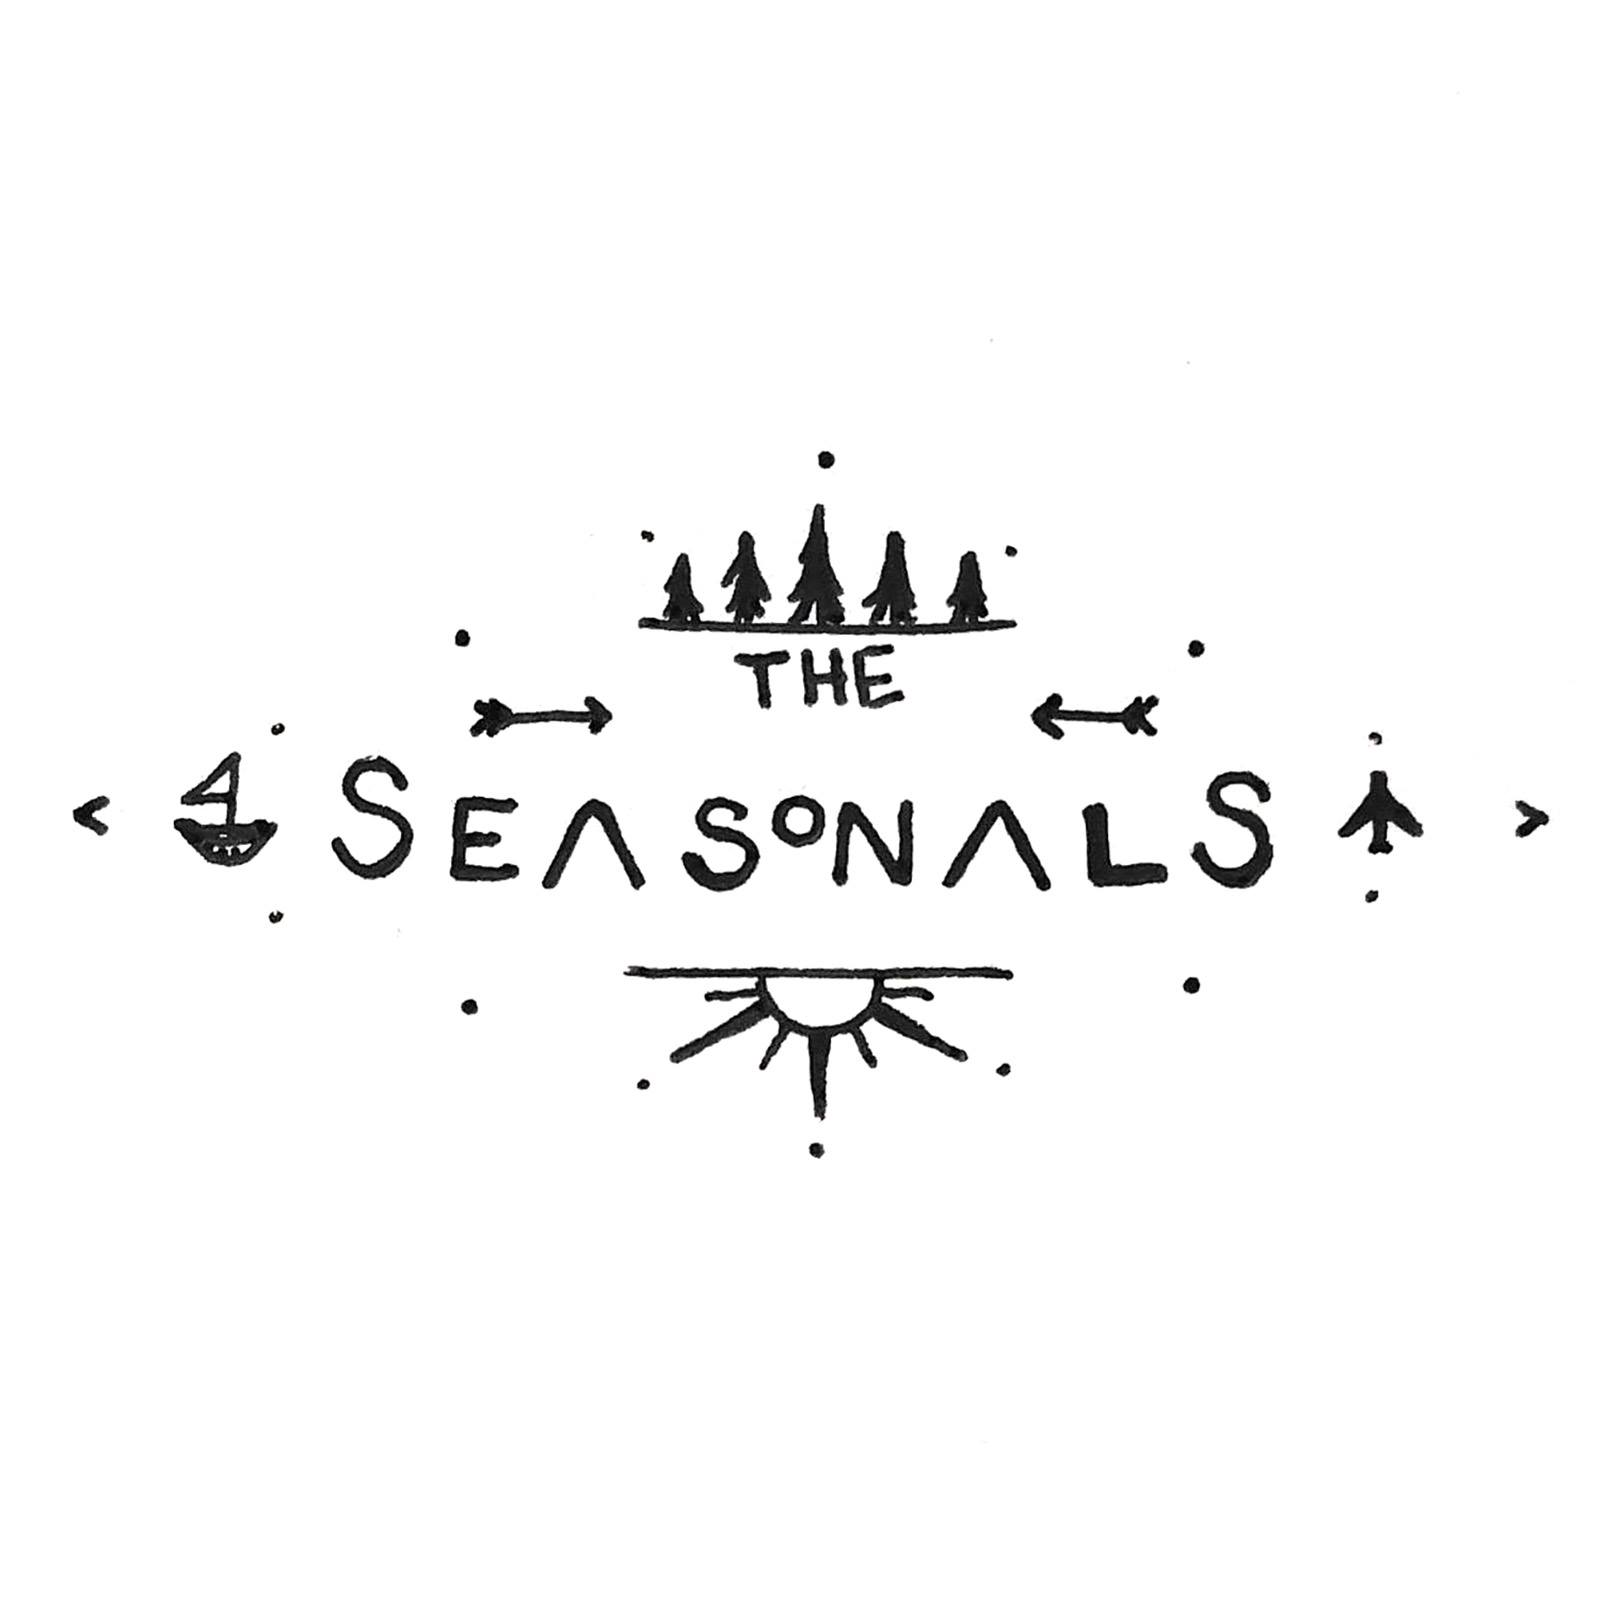 The Seasonals